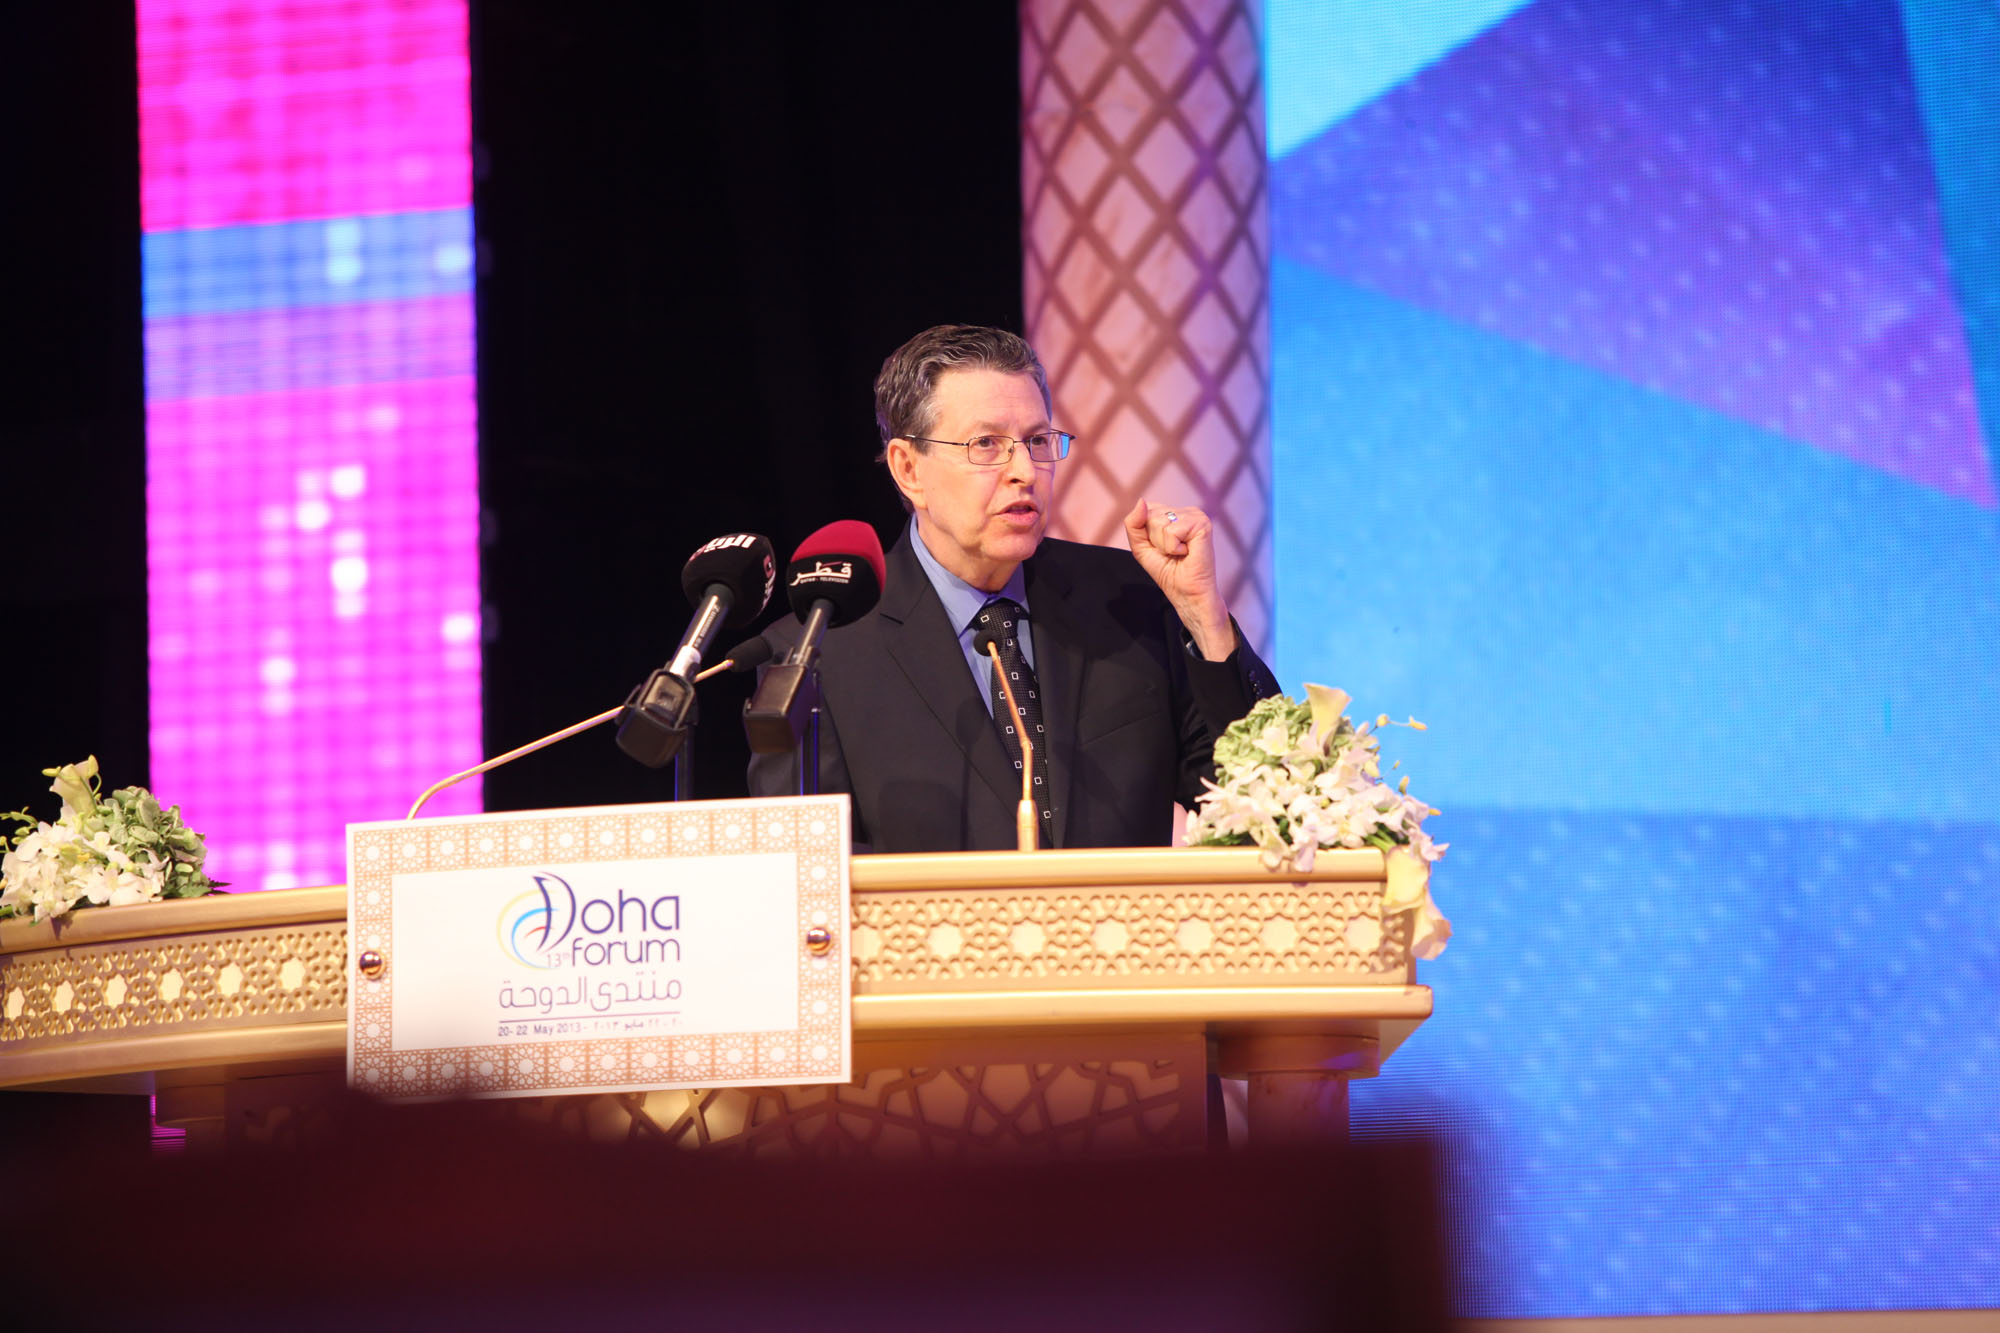 CMED director Steven L. Spiegel closes the 2013 conference.